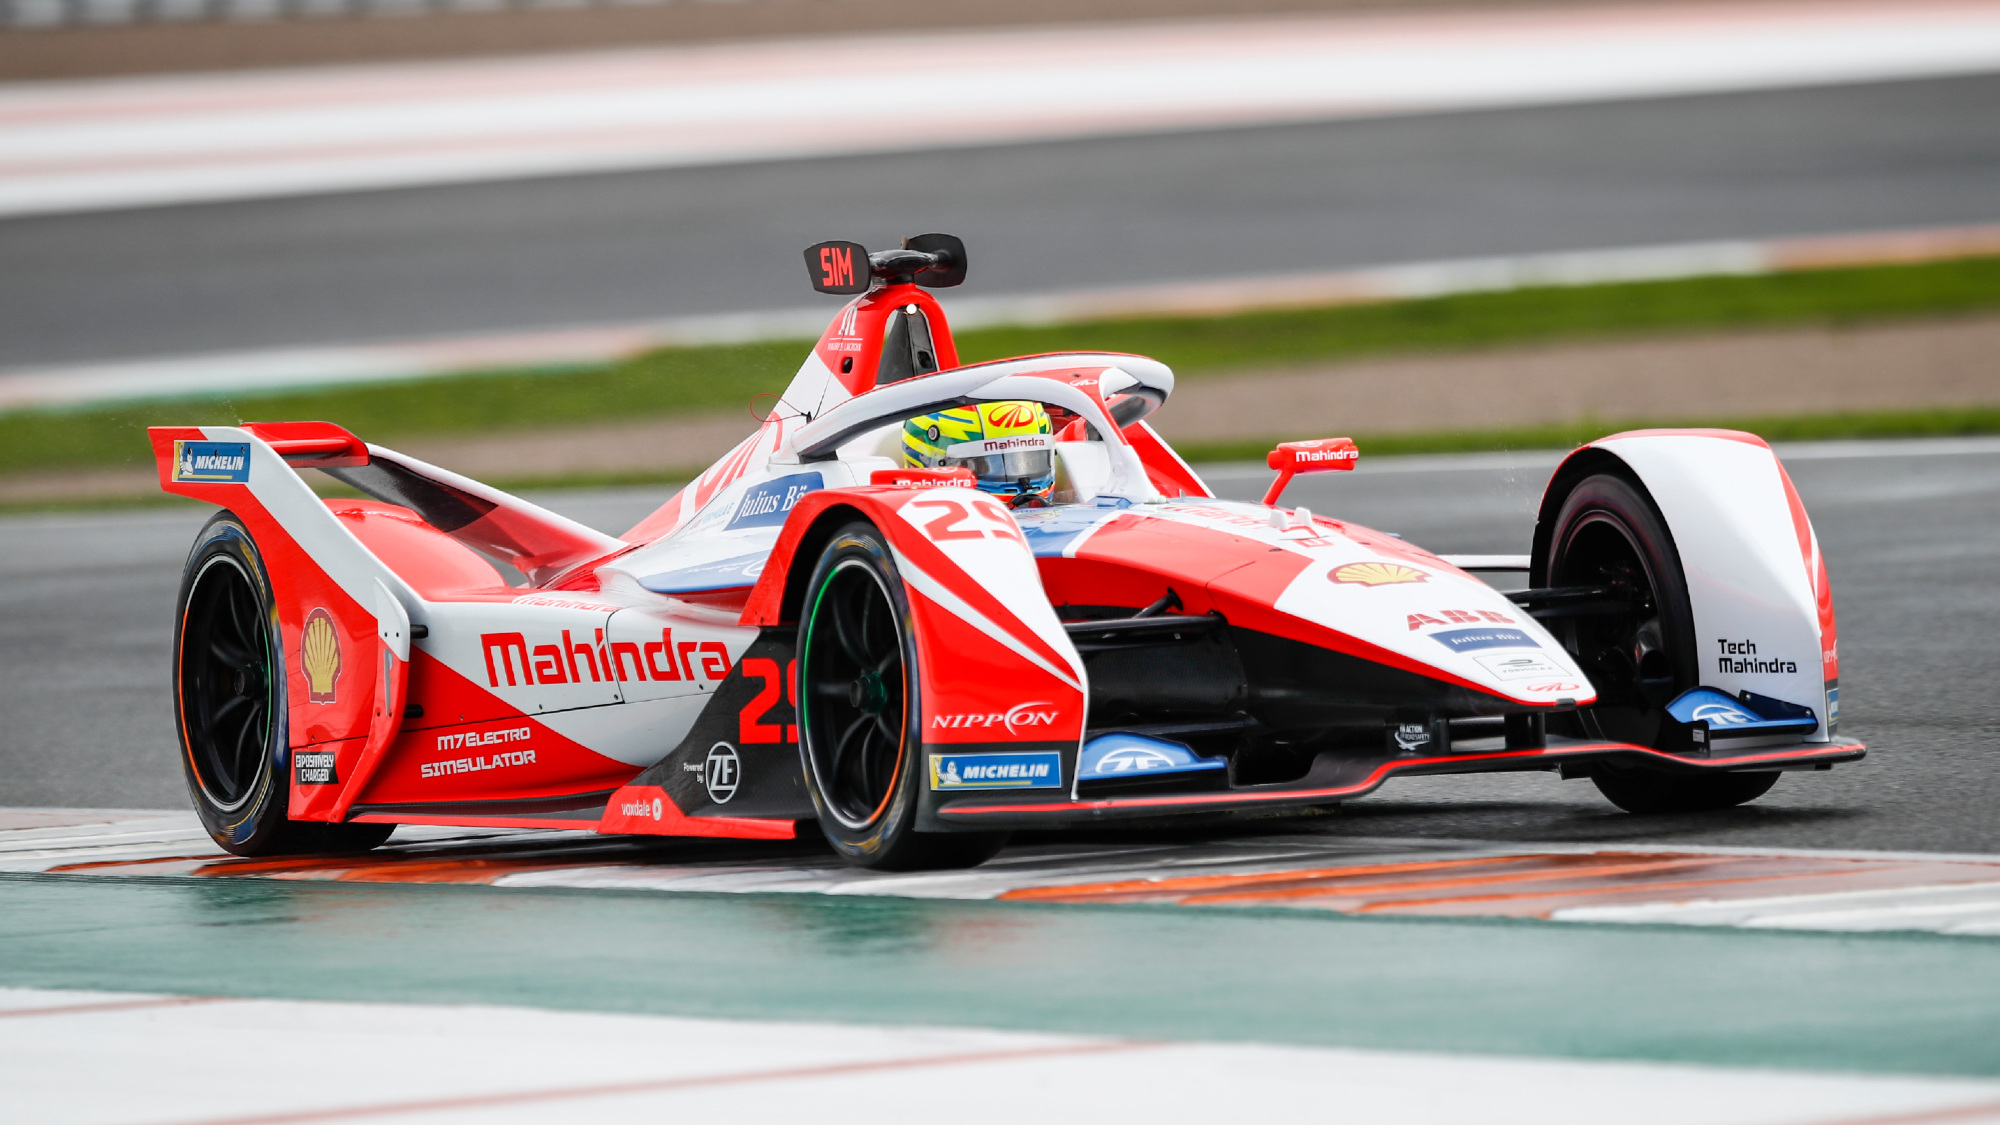 Can 'revolutionary' Formula E car return Mahindra to winning ways?